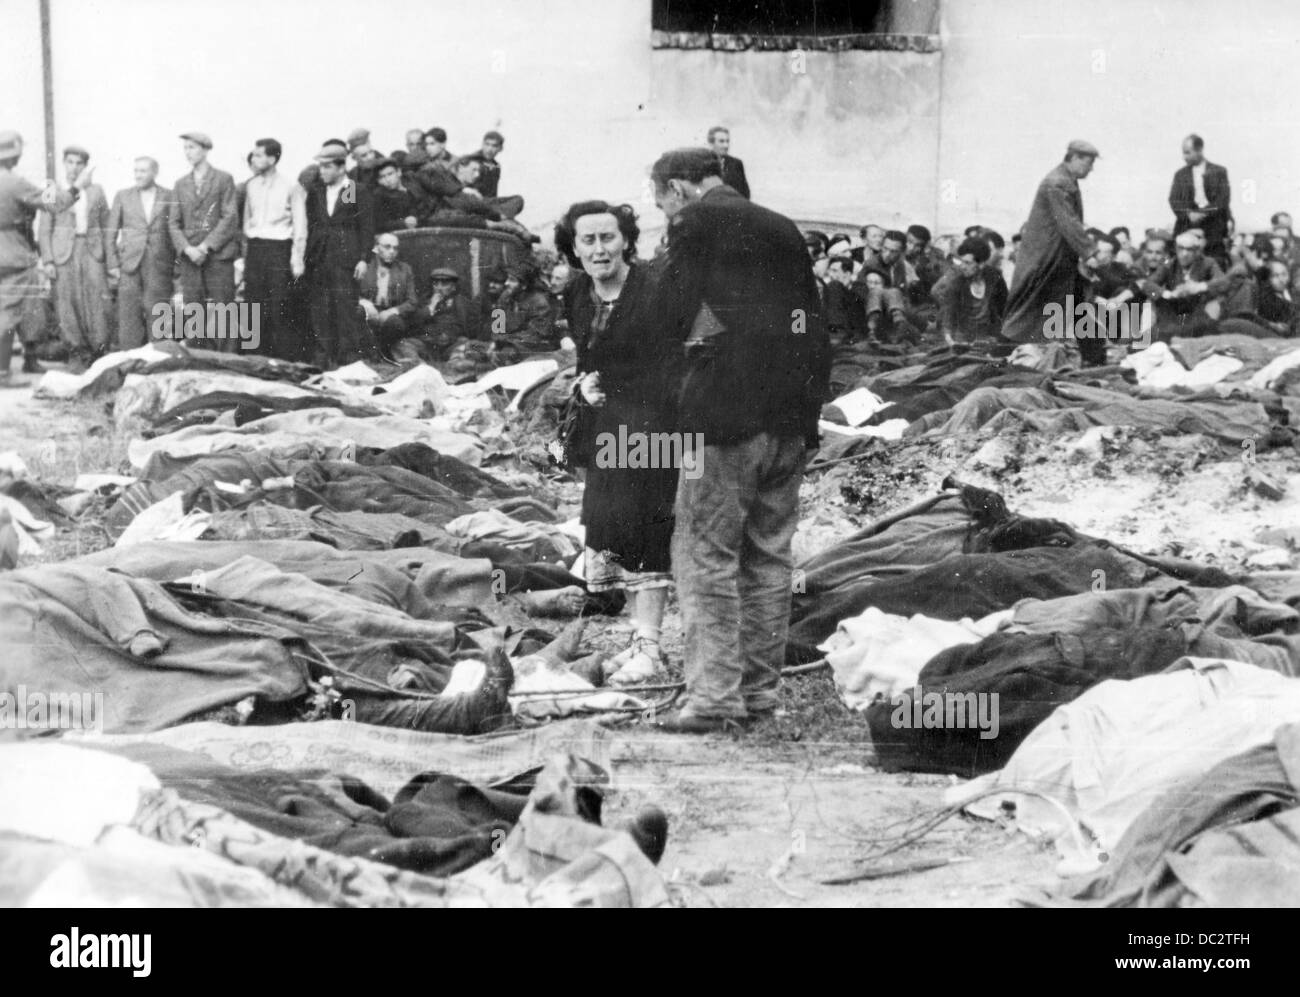 The Nazi Propaganda! on the back of the picture reads: 'In front of the victims of the Bolshevik terror. Ukrainians - Stock Image